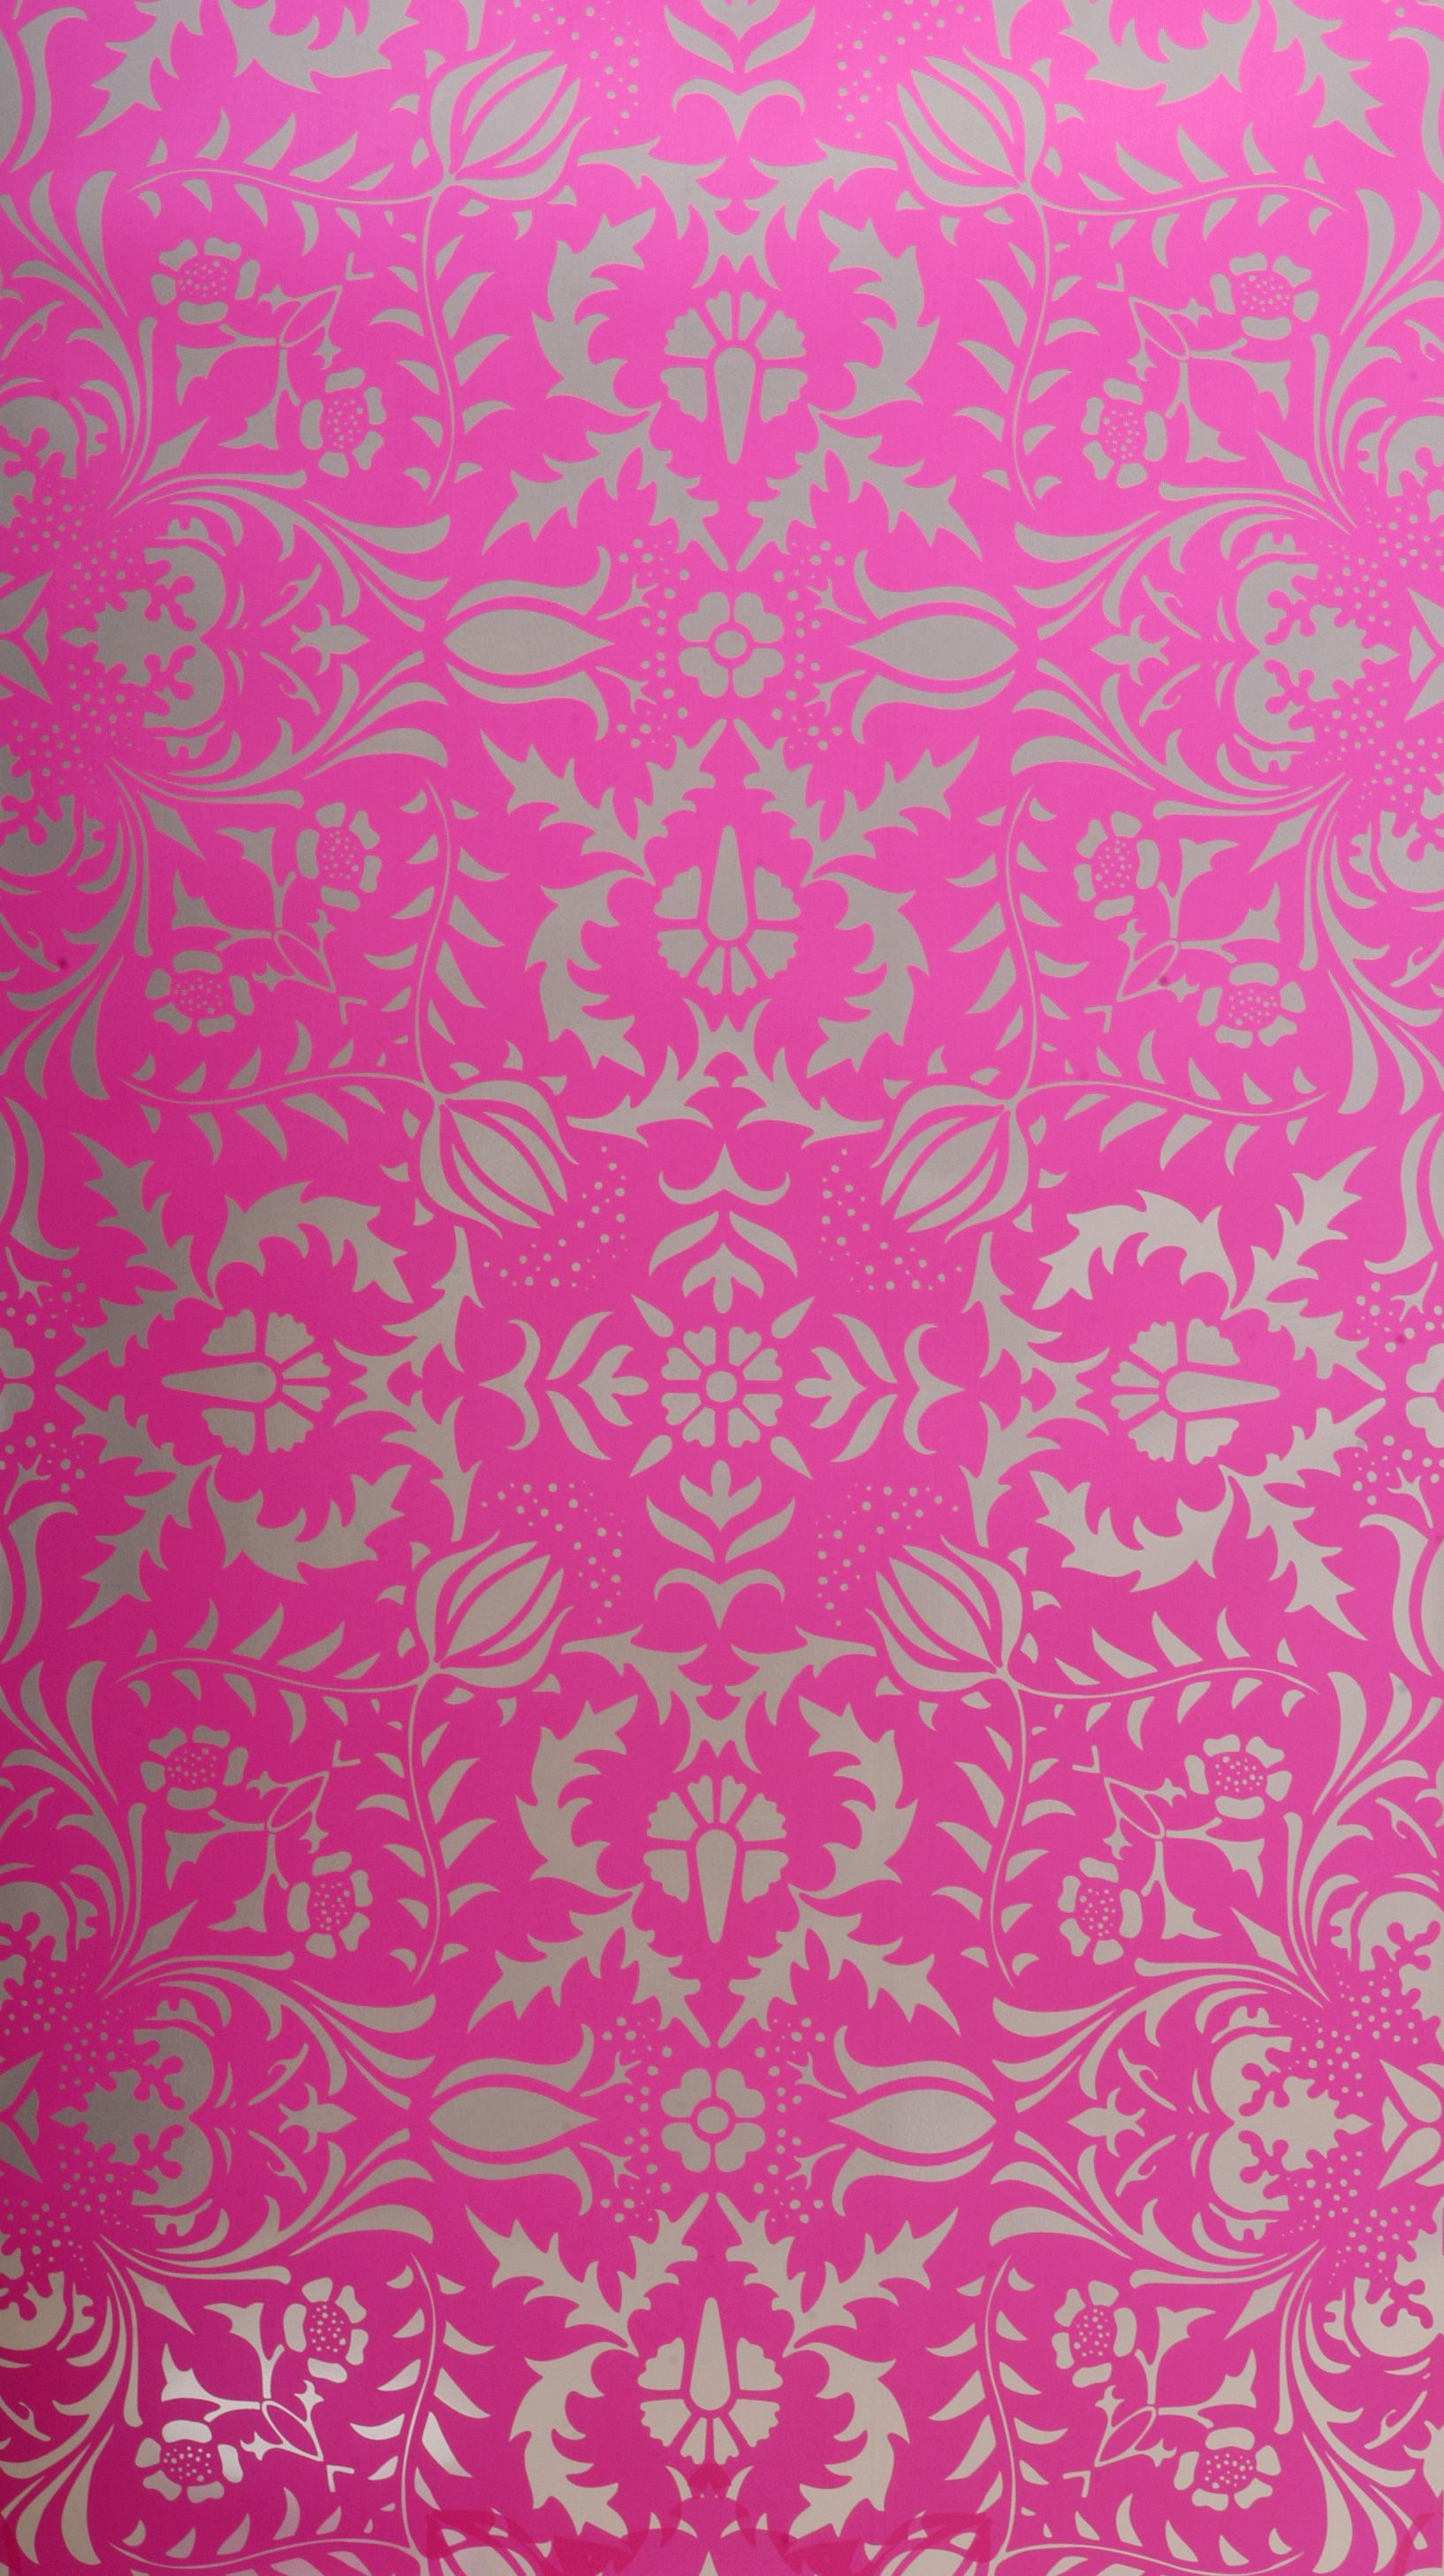 Dauphine: Electric Raspberry wallpaper from Flavorpaper.com